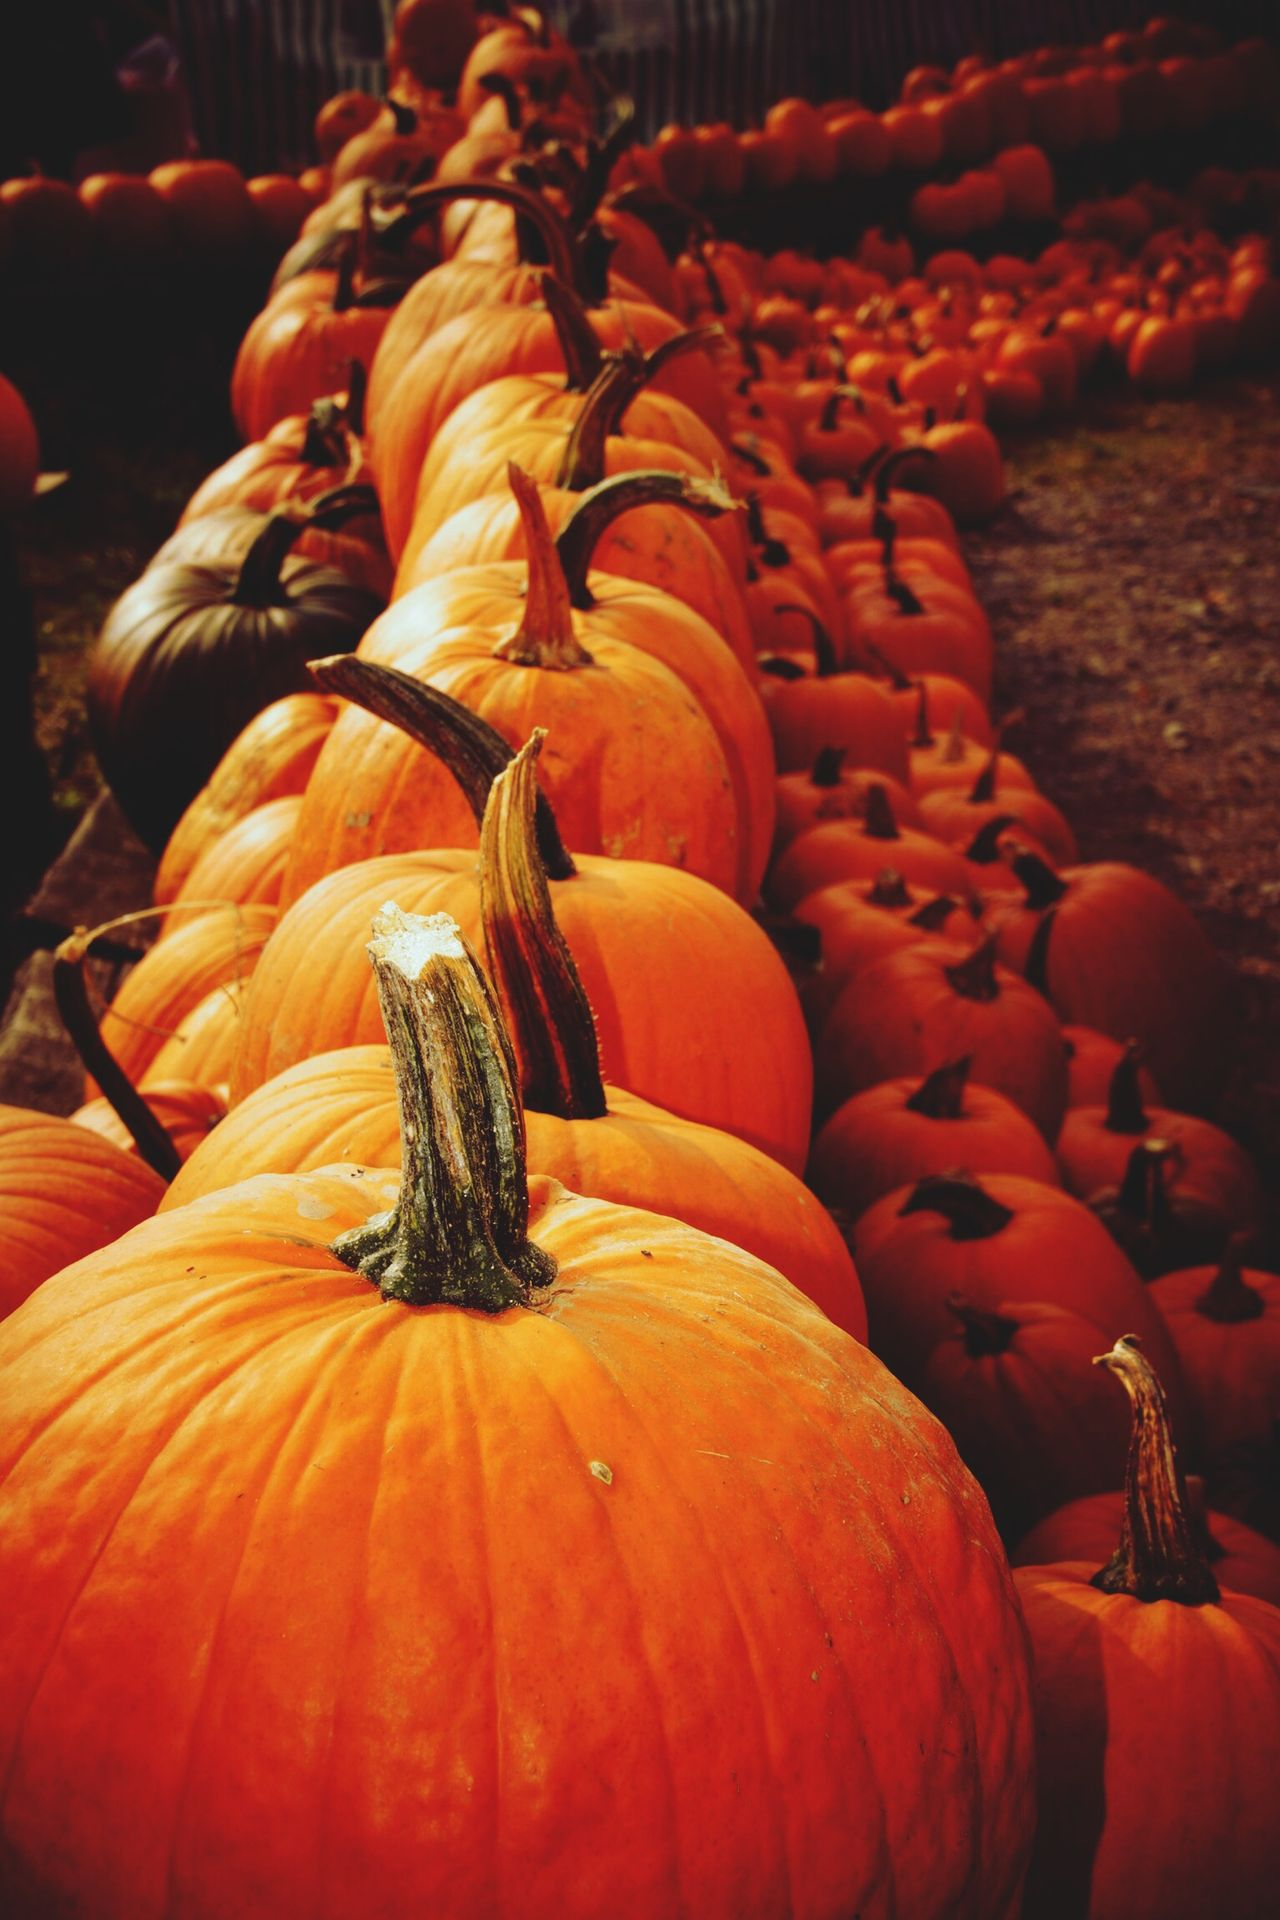 Halloween Pumpkin Orange Autumn Pumpkins Nature Beauty In Nature Large Group Of Objects Orange Color Orange By Motorola